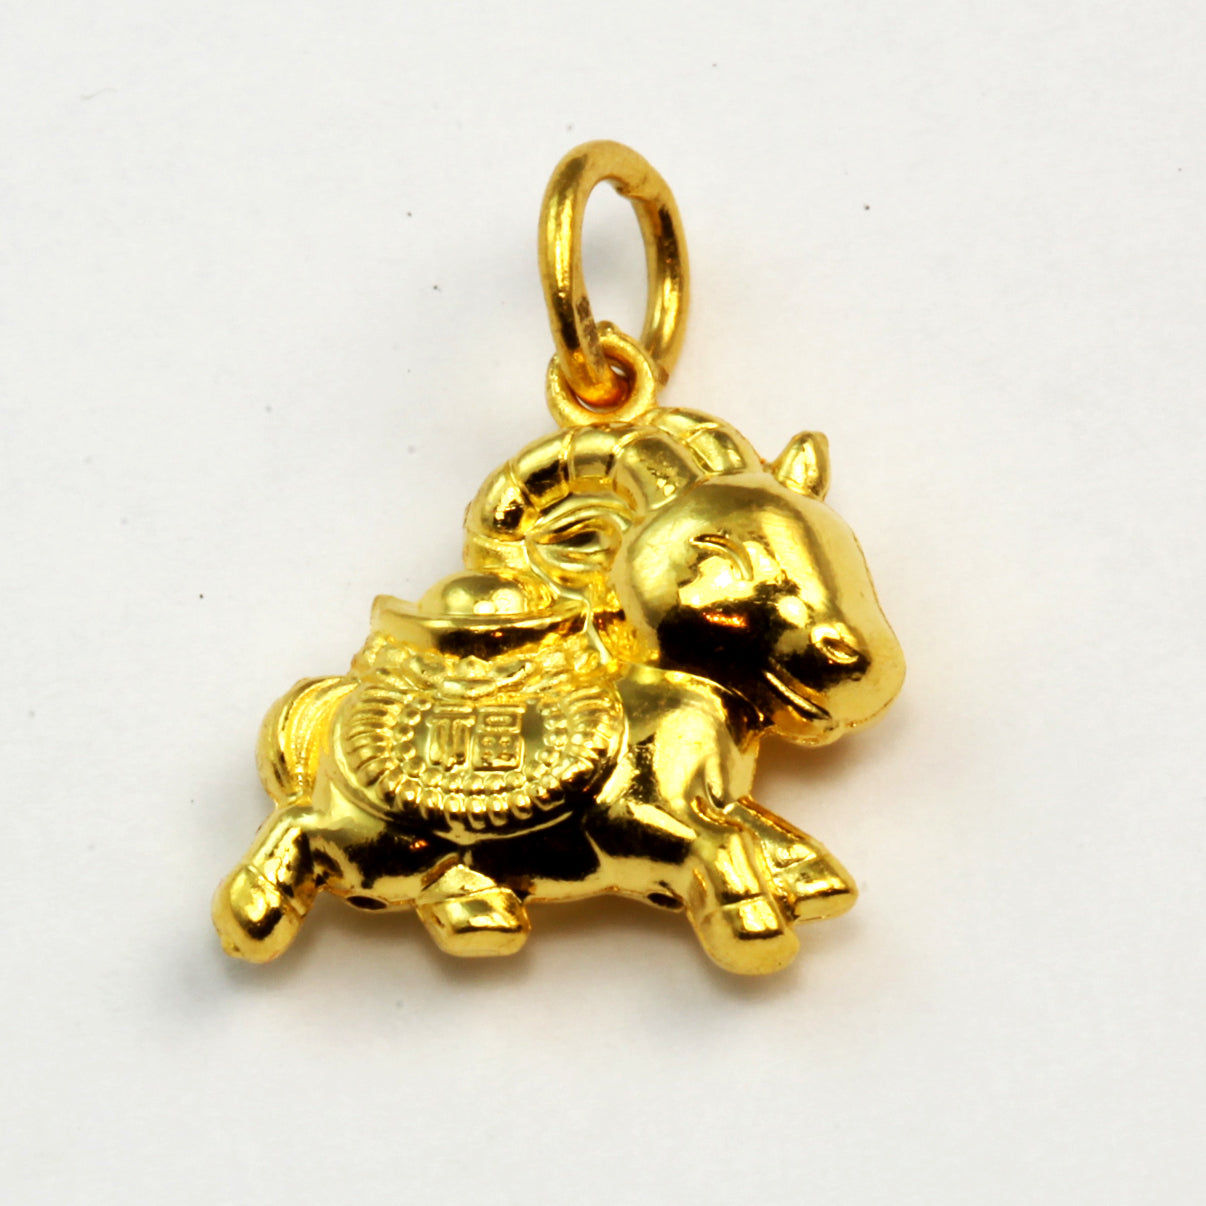 24K Solid Yellow Gold 3D Horse Pendant 2.96 Grams